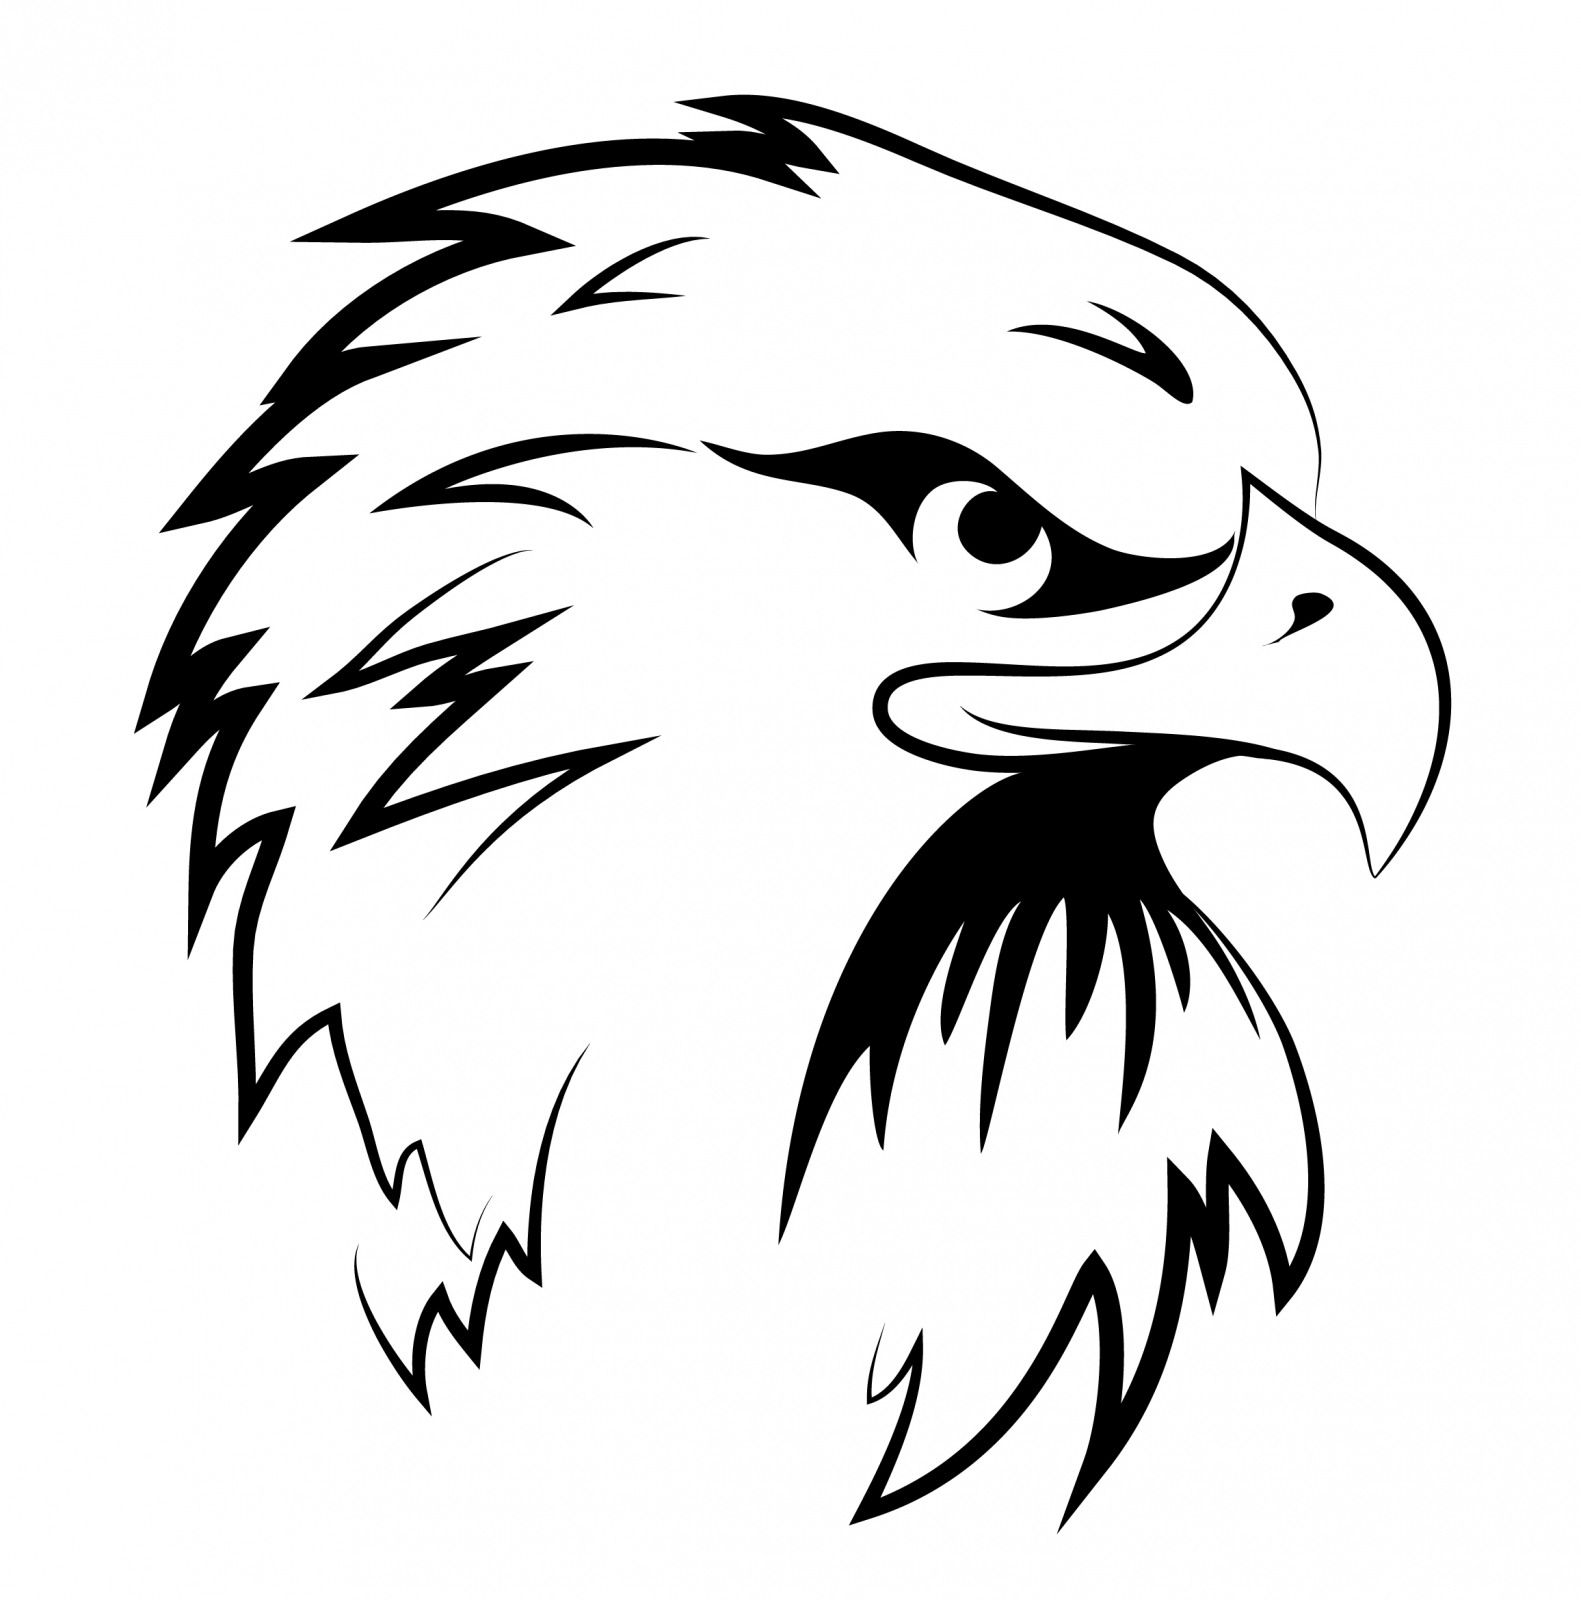 eagle head silhouette silhouette eagle head at getdrawings free download silhouette eagle head